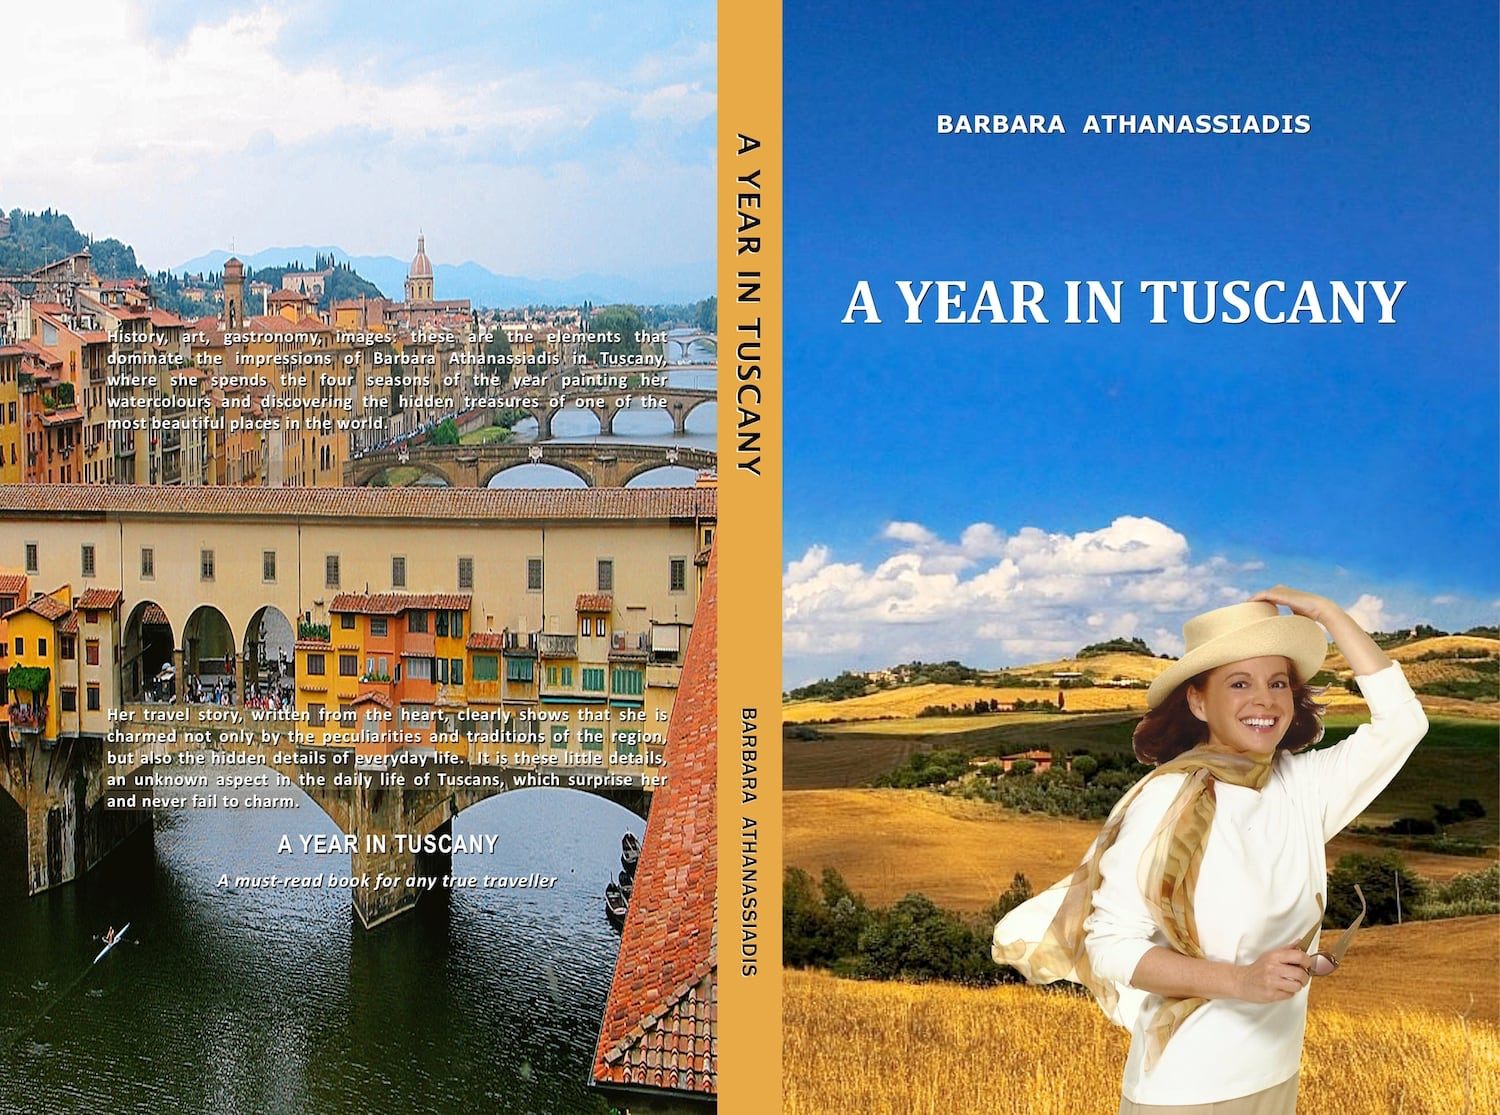 A Year In Tuscany.jpg